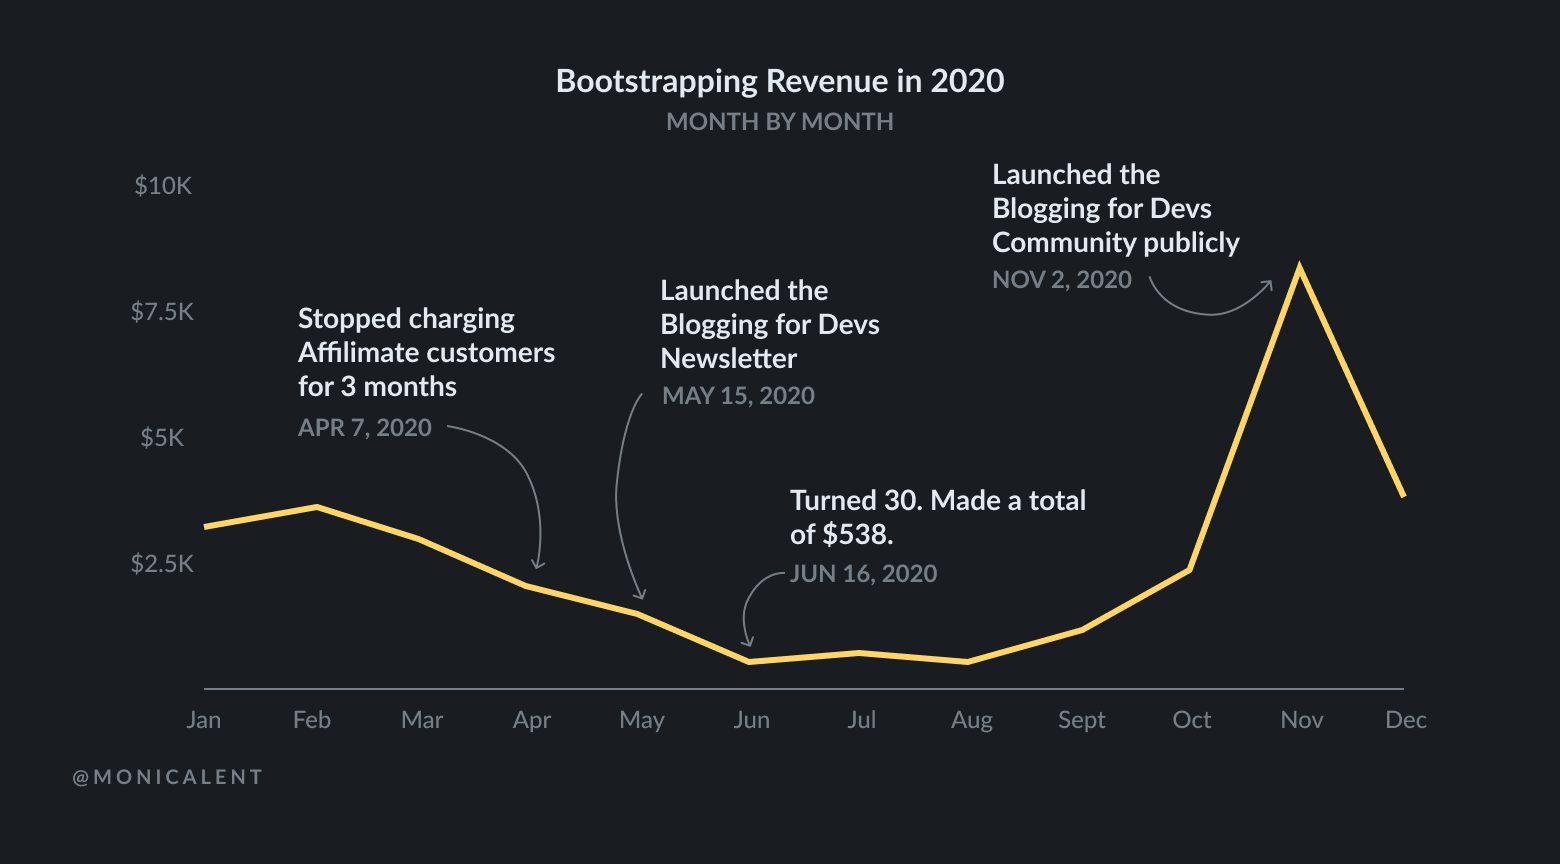 Bootstrapping income summary